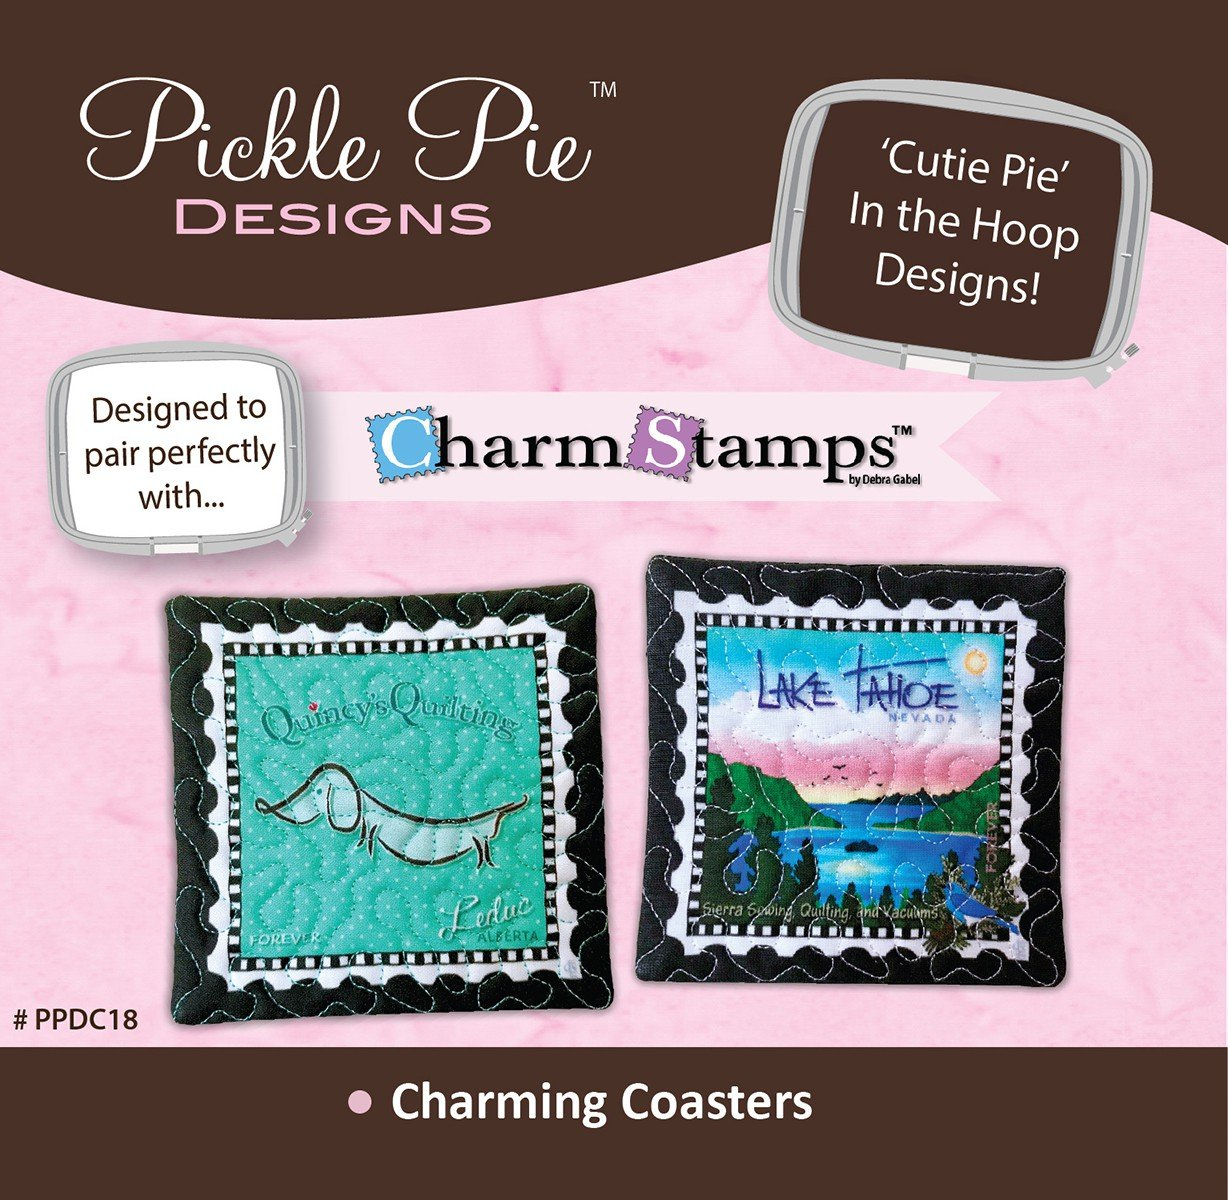 Charming Coasters In The Hoop Embroidery Design CD